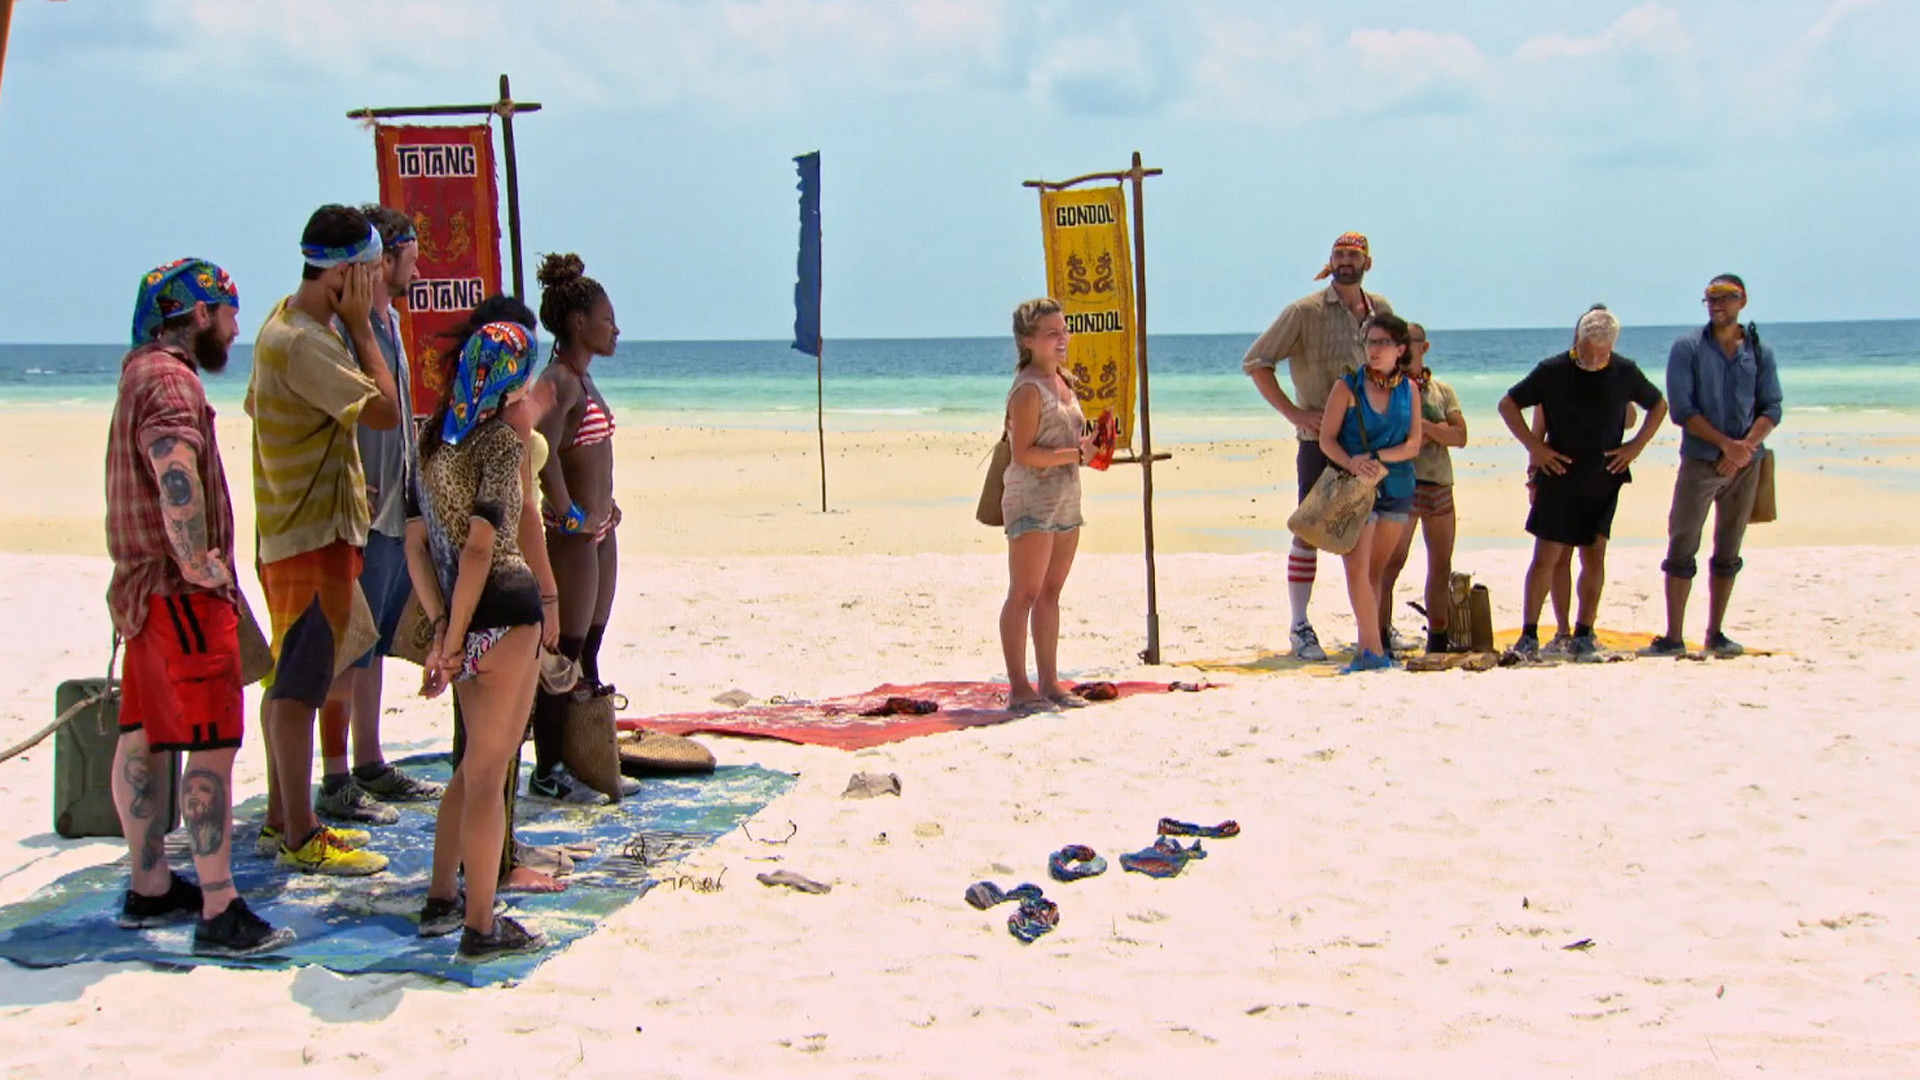 An unexpected twist forces all the remaining castaways to start fresh.